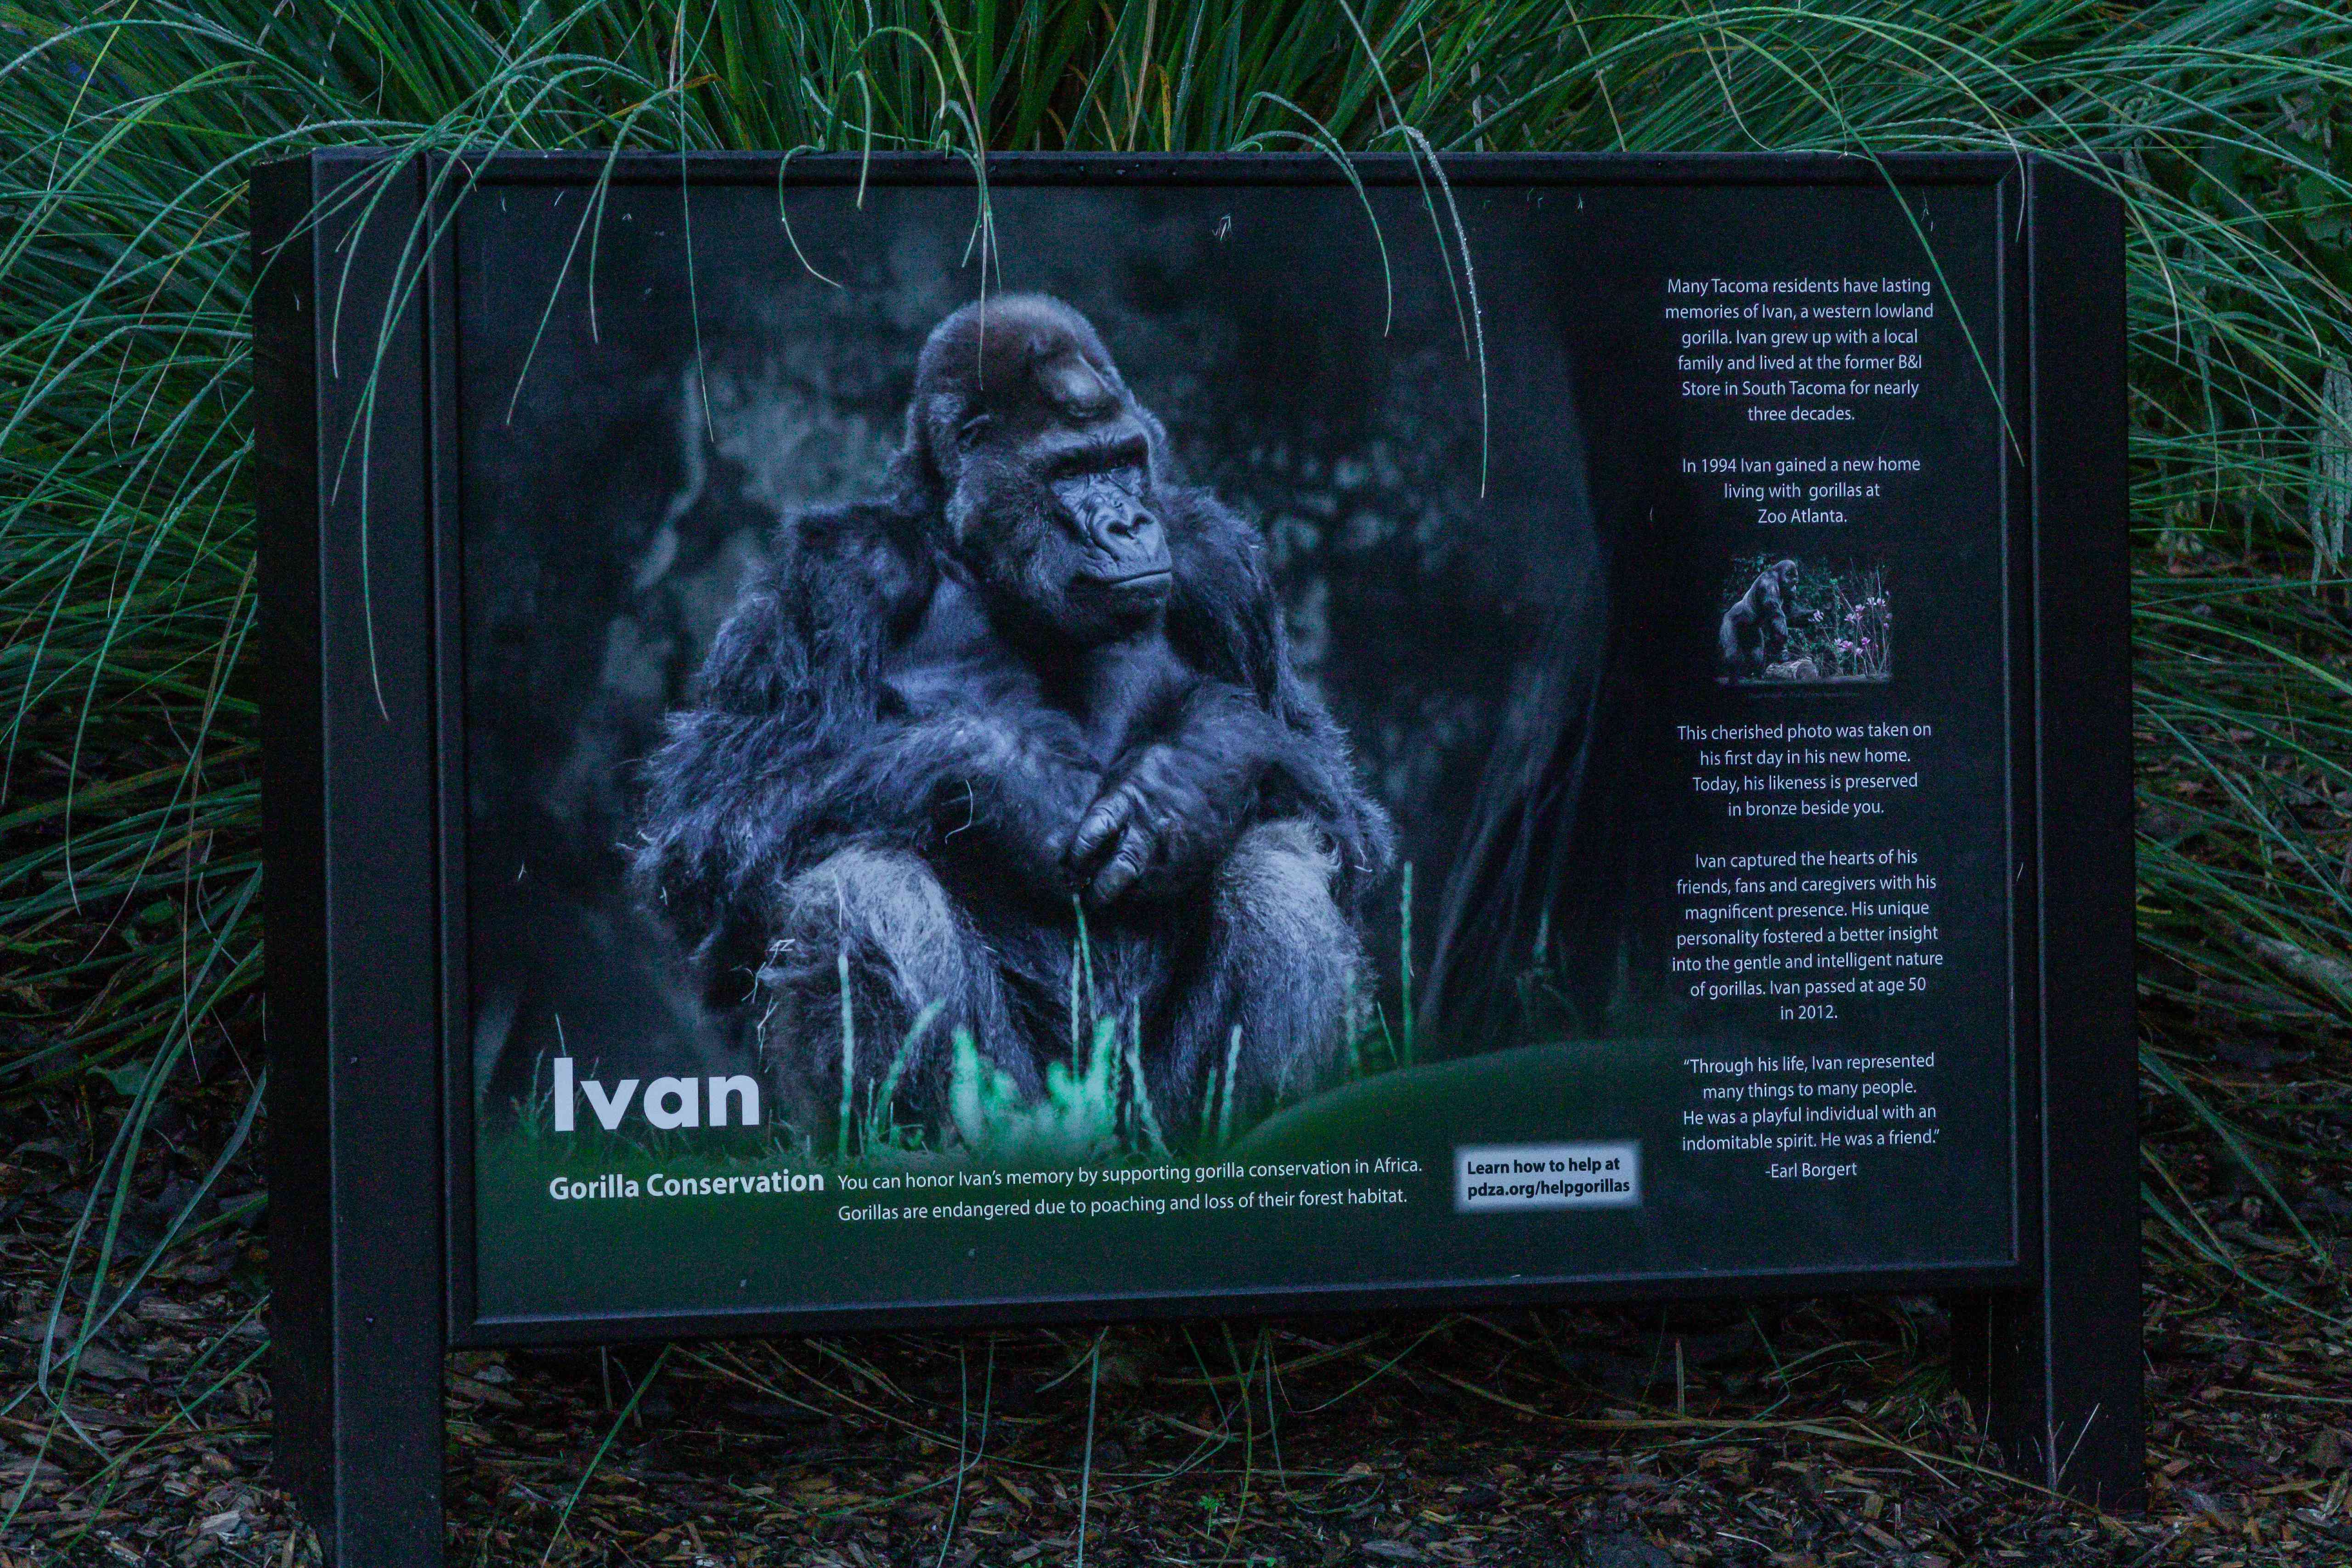 A sign explaining the life of Ivan the Gorilla.